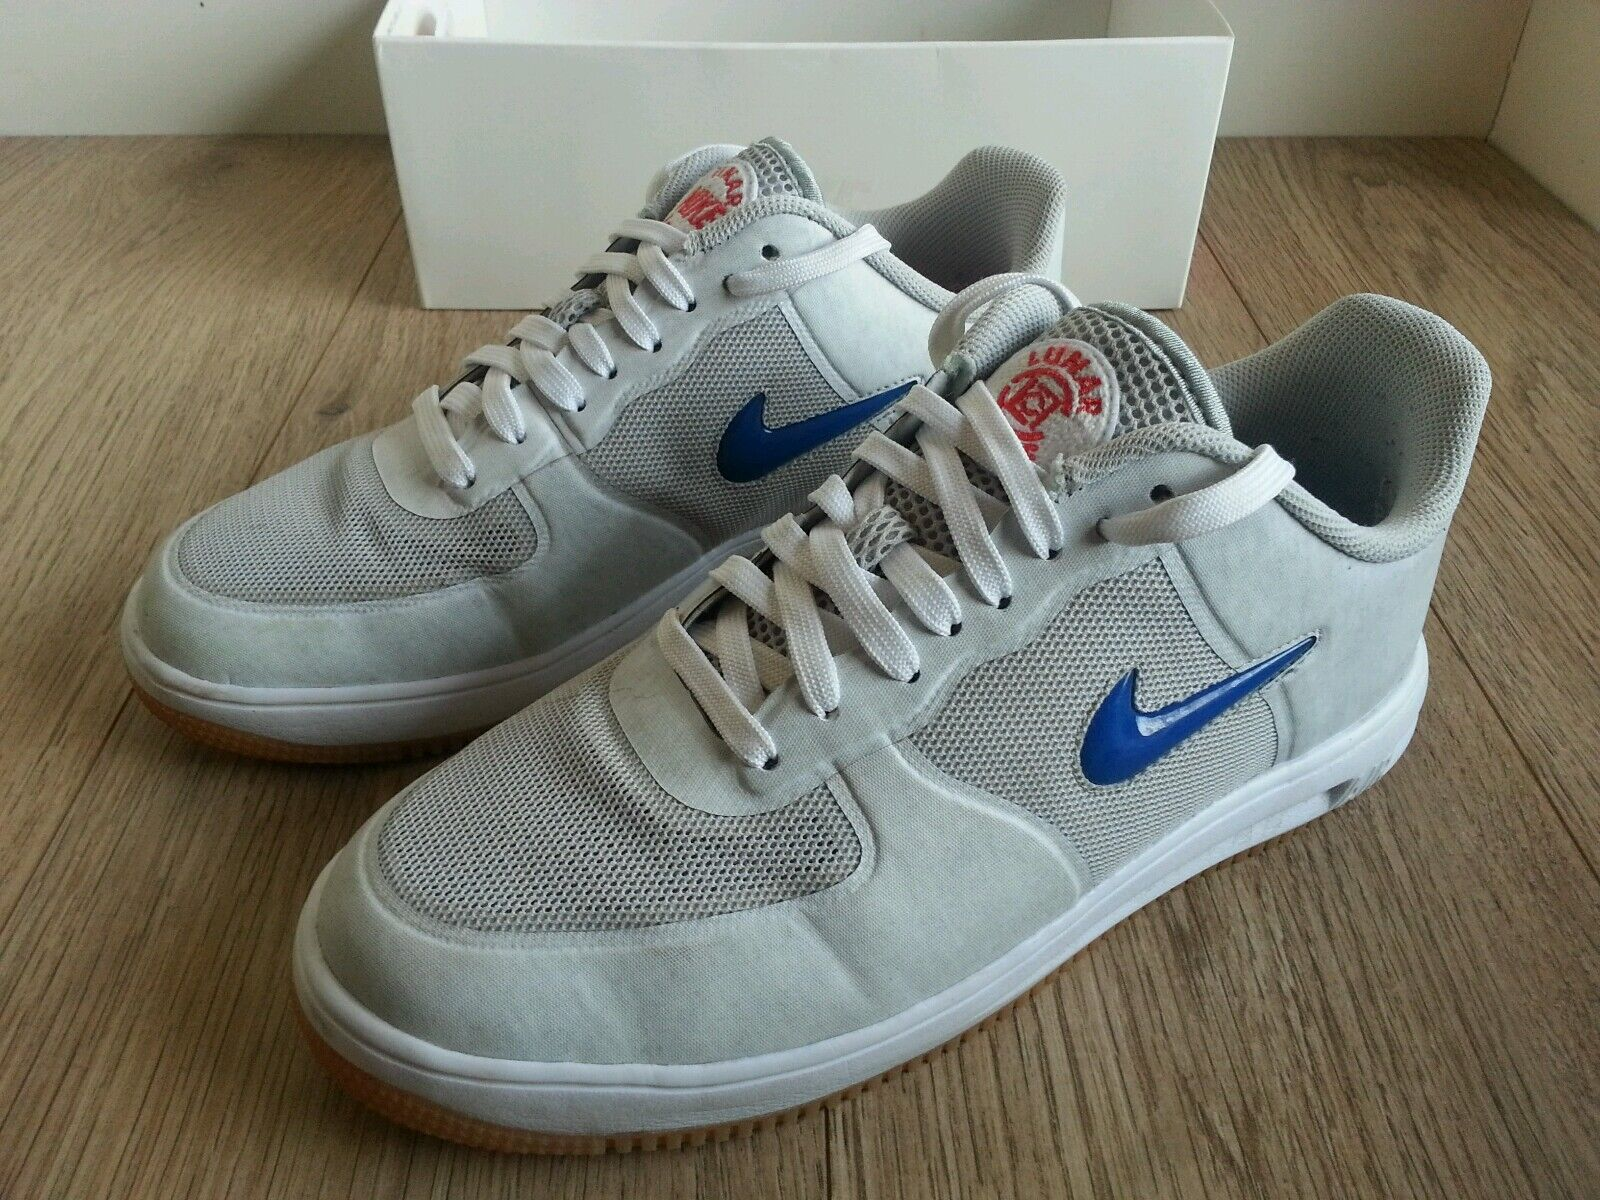 Nike Lunar Force 1 Fuse SP CLOT Trainers Men Used White 717303-064